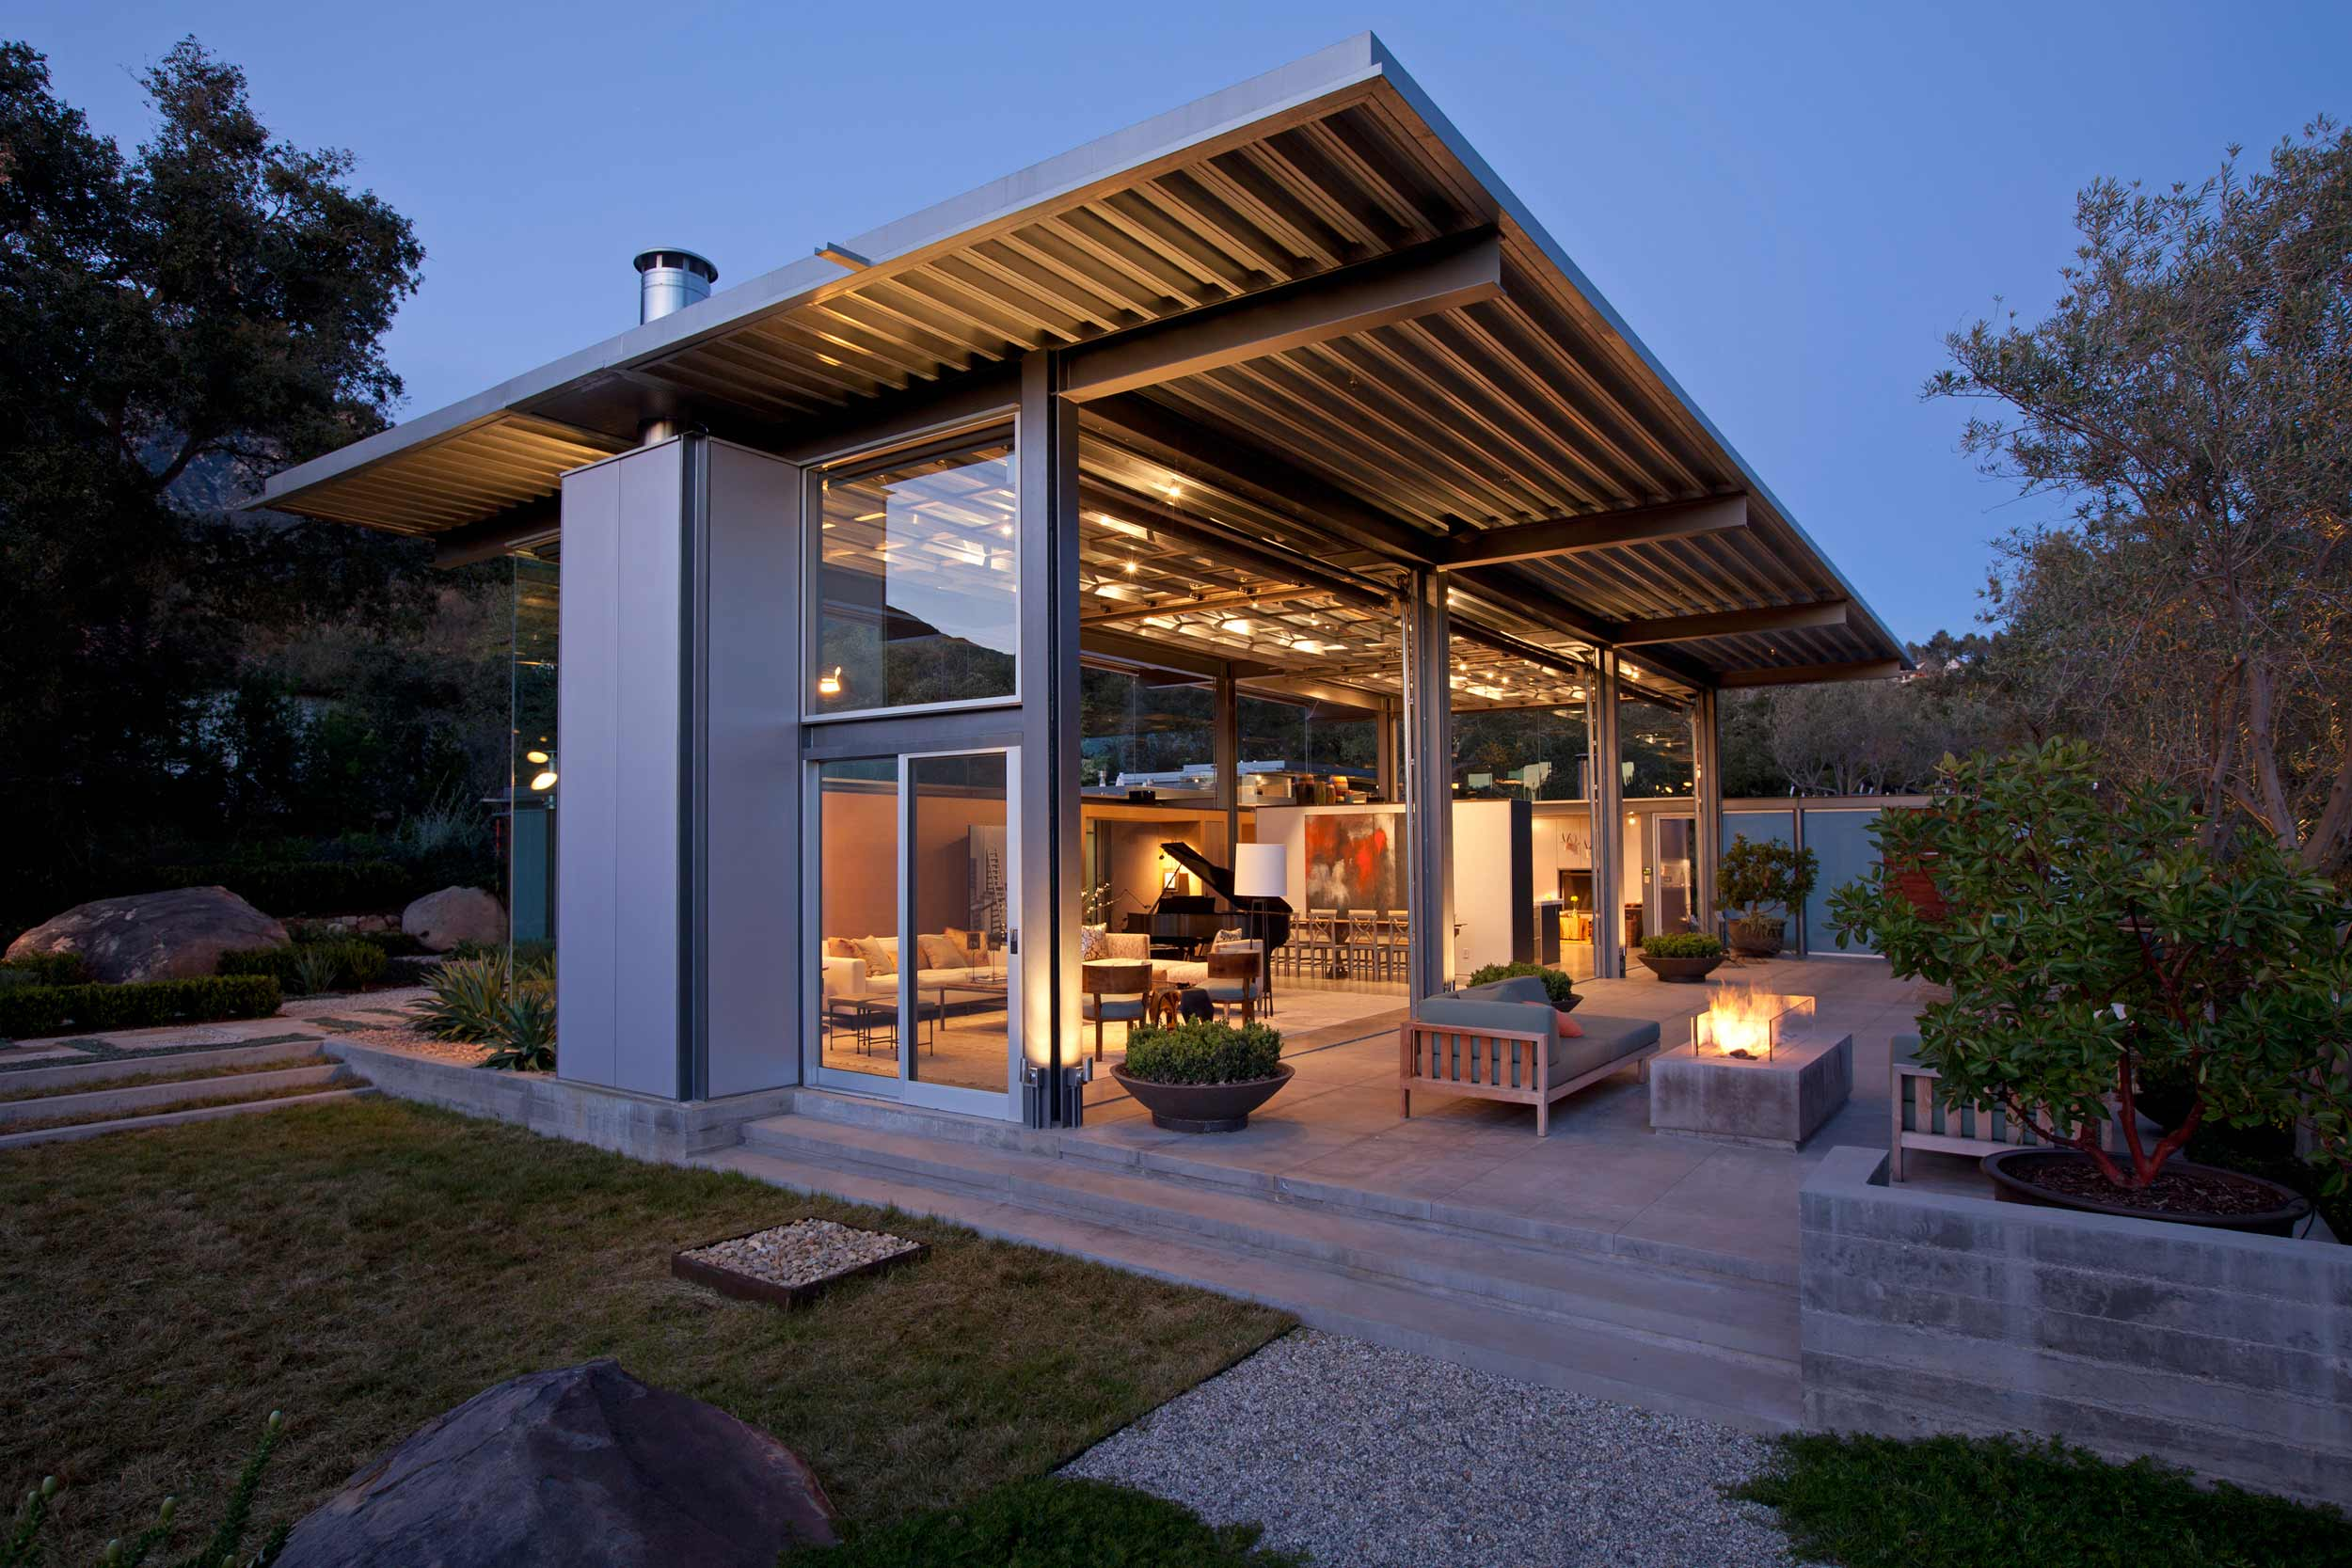 home and garden at dusk with architectural overhang roof